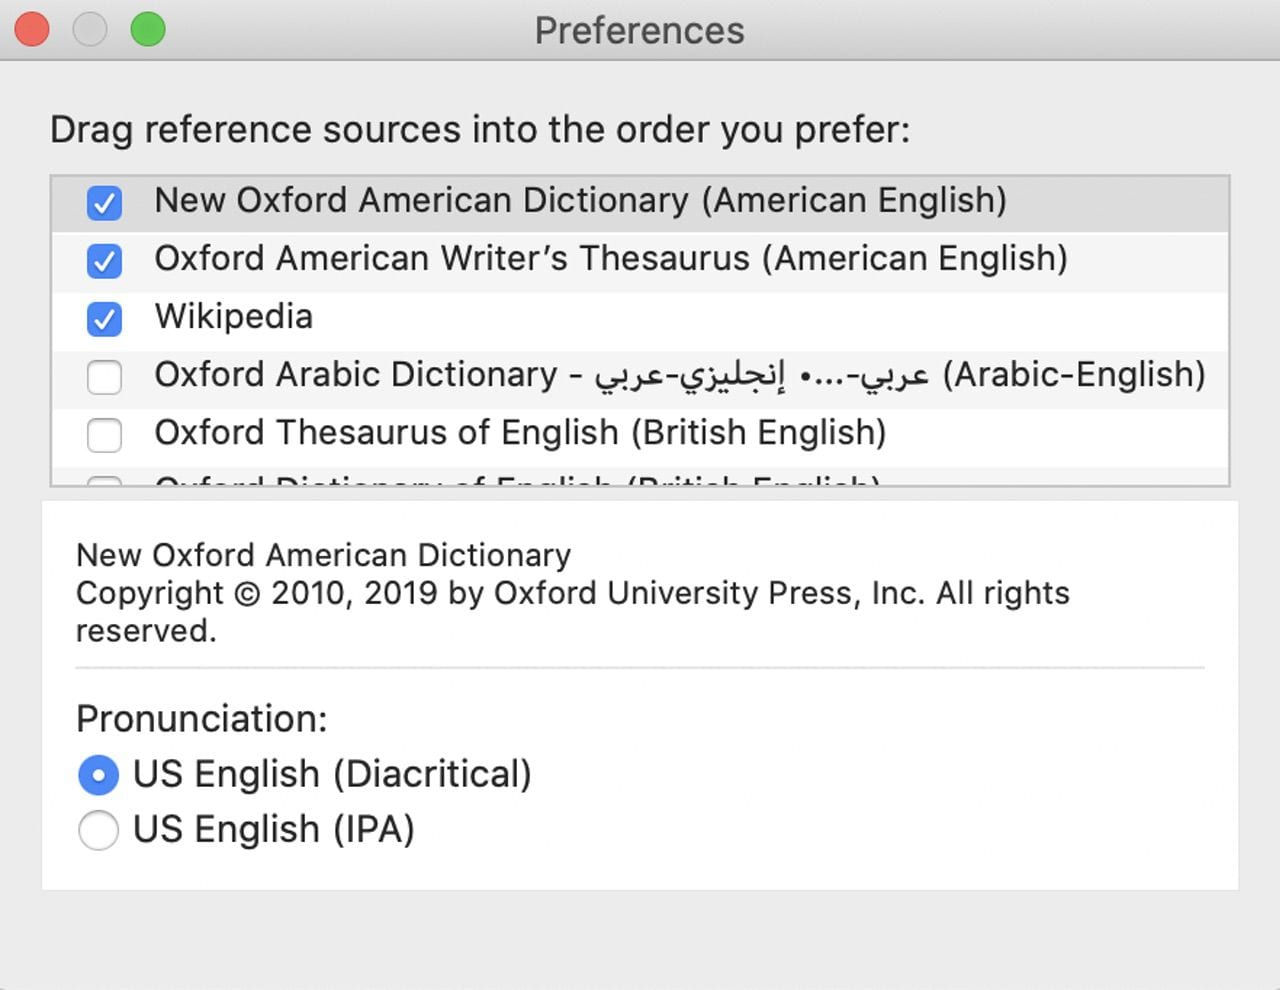 Dictionary settings provide a way to prioritize which sources are listed first.